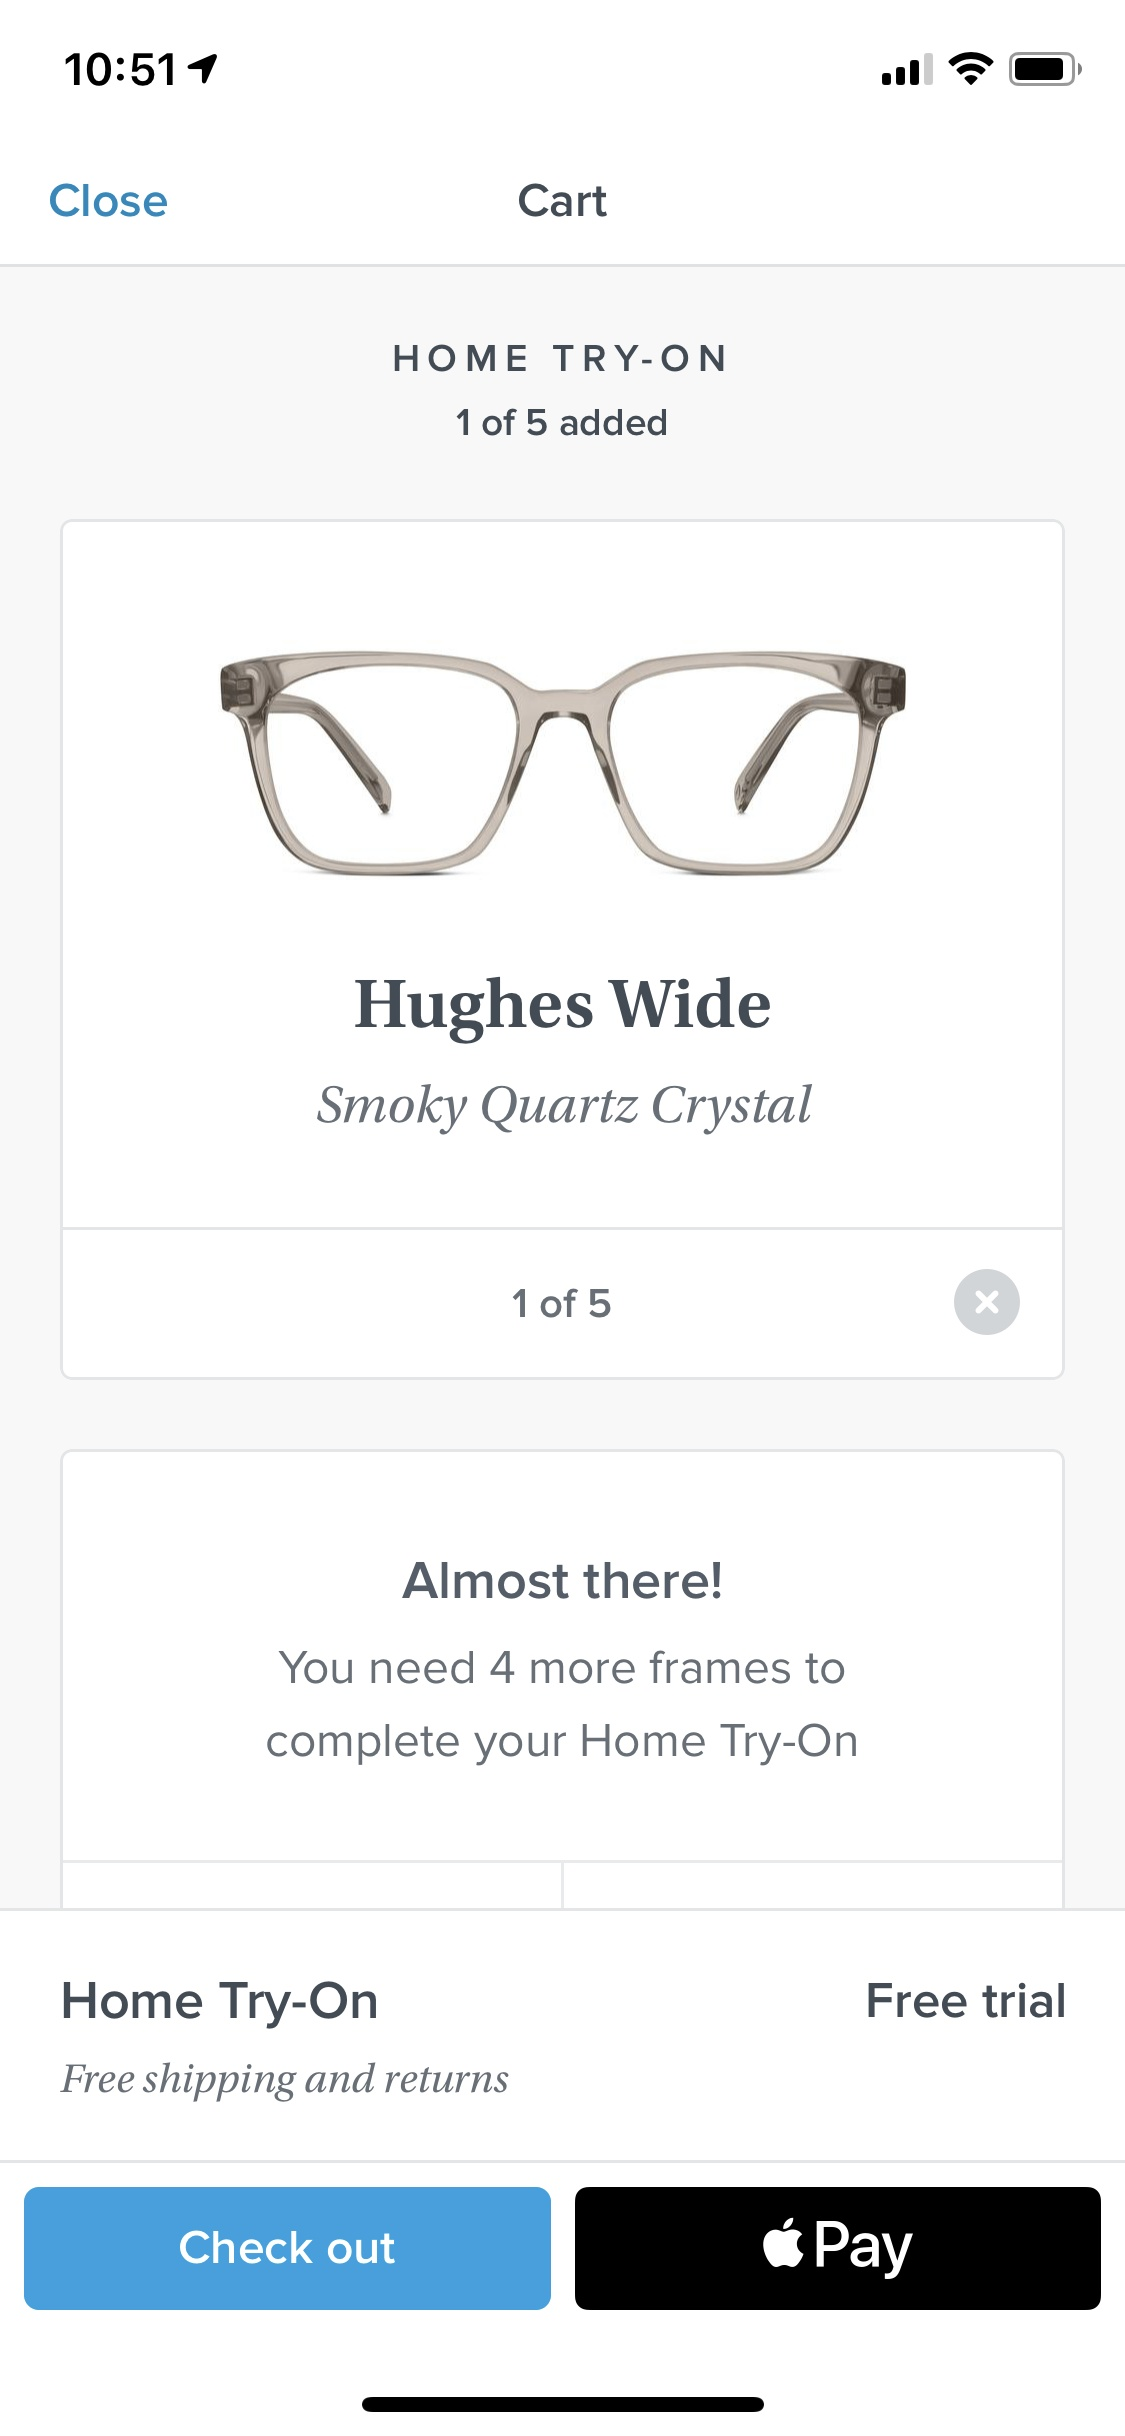 Cart on iOS by Warby Parker from UIGarage